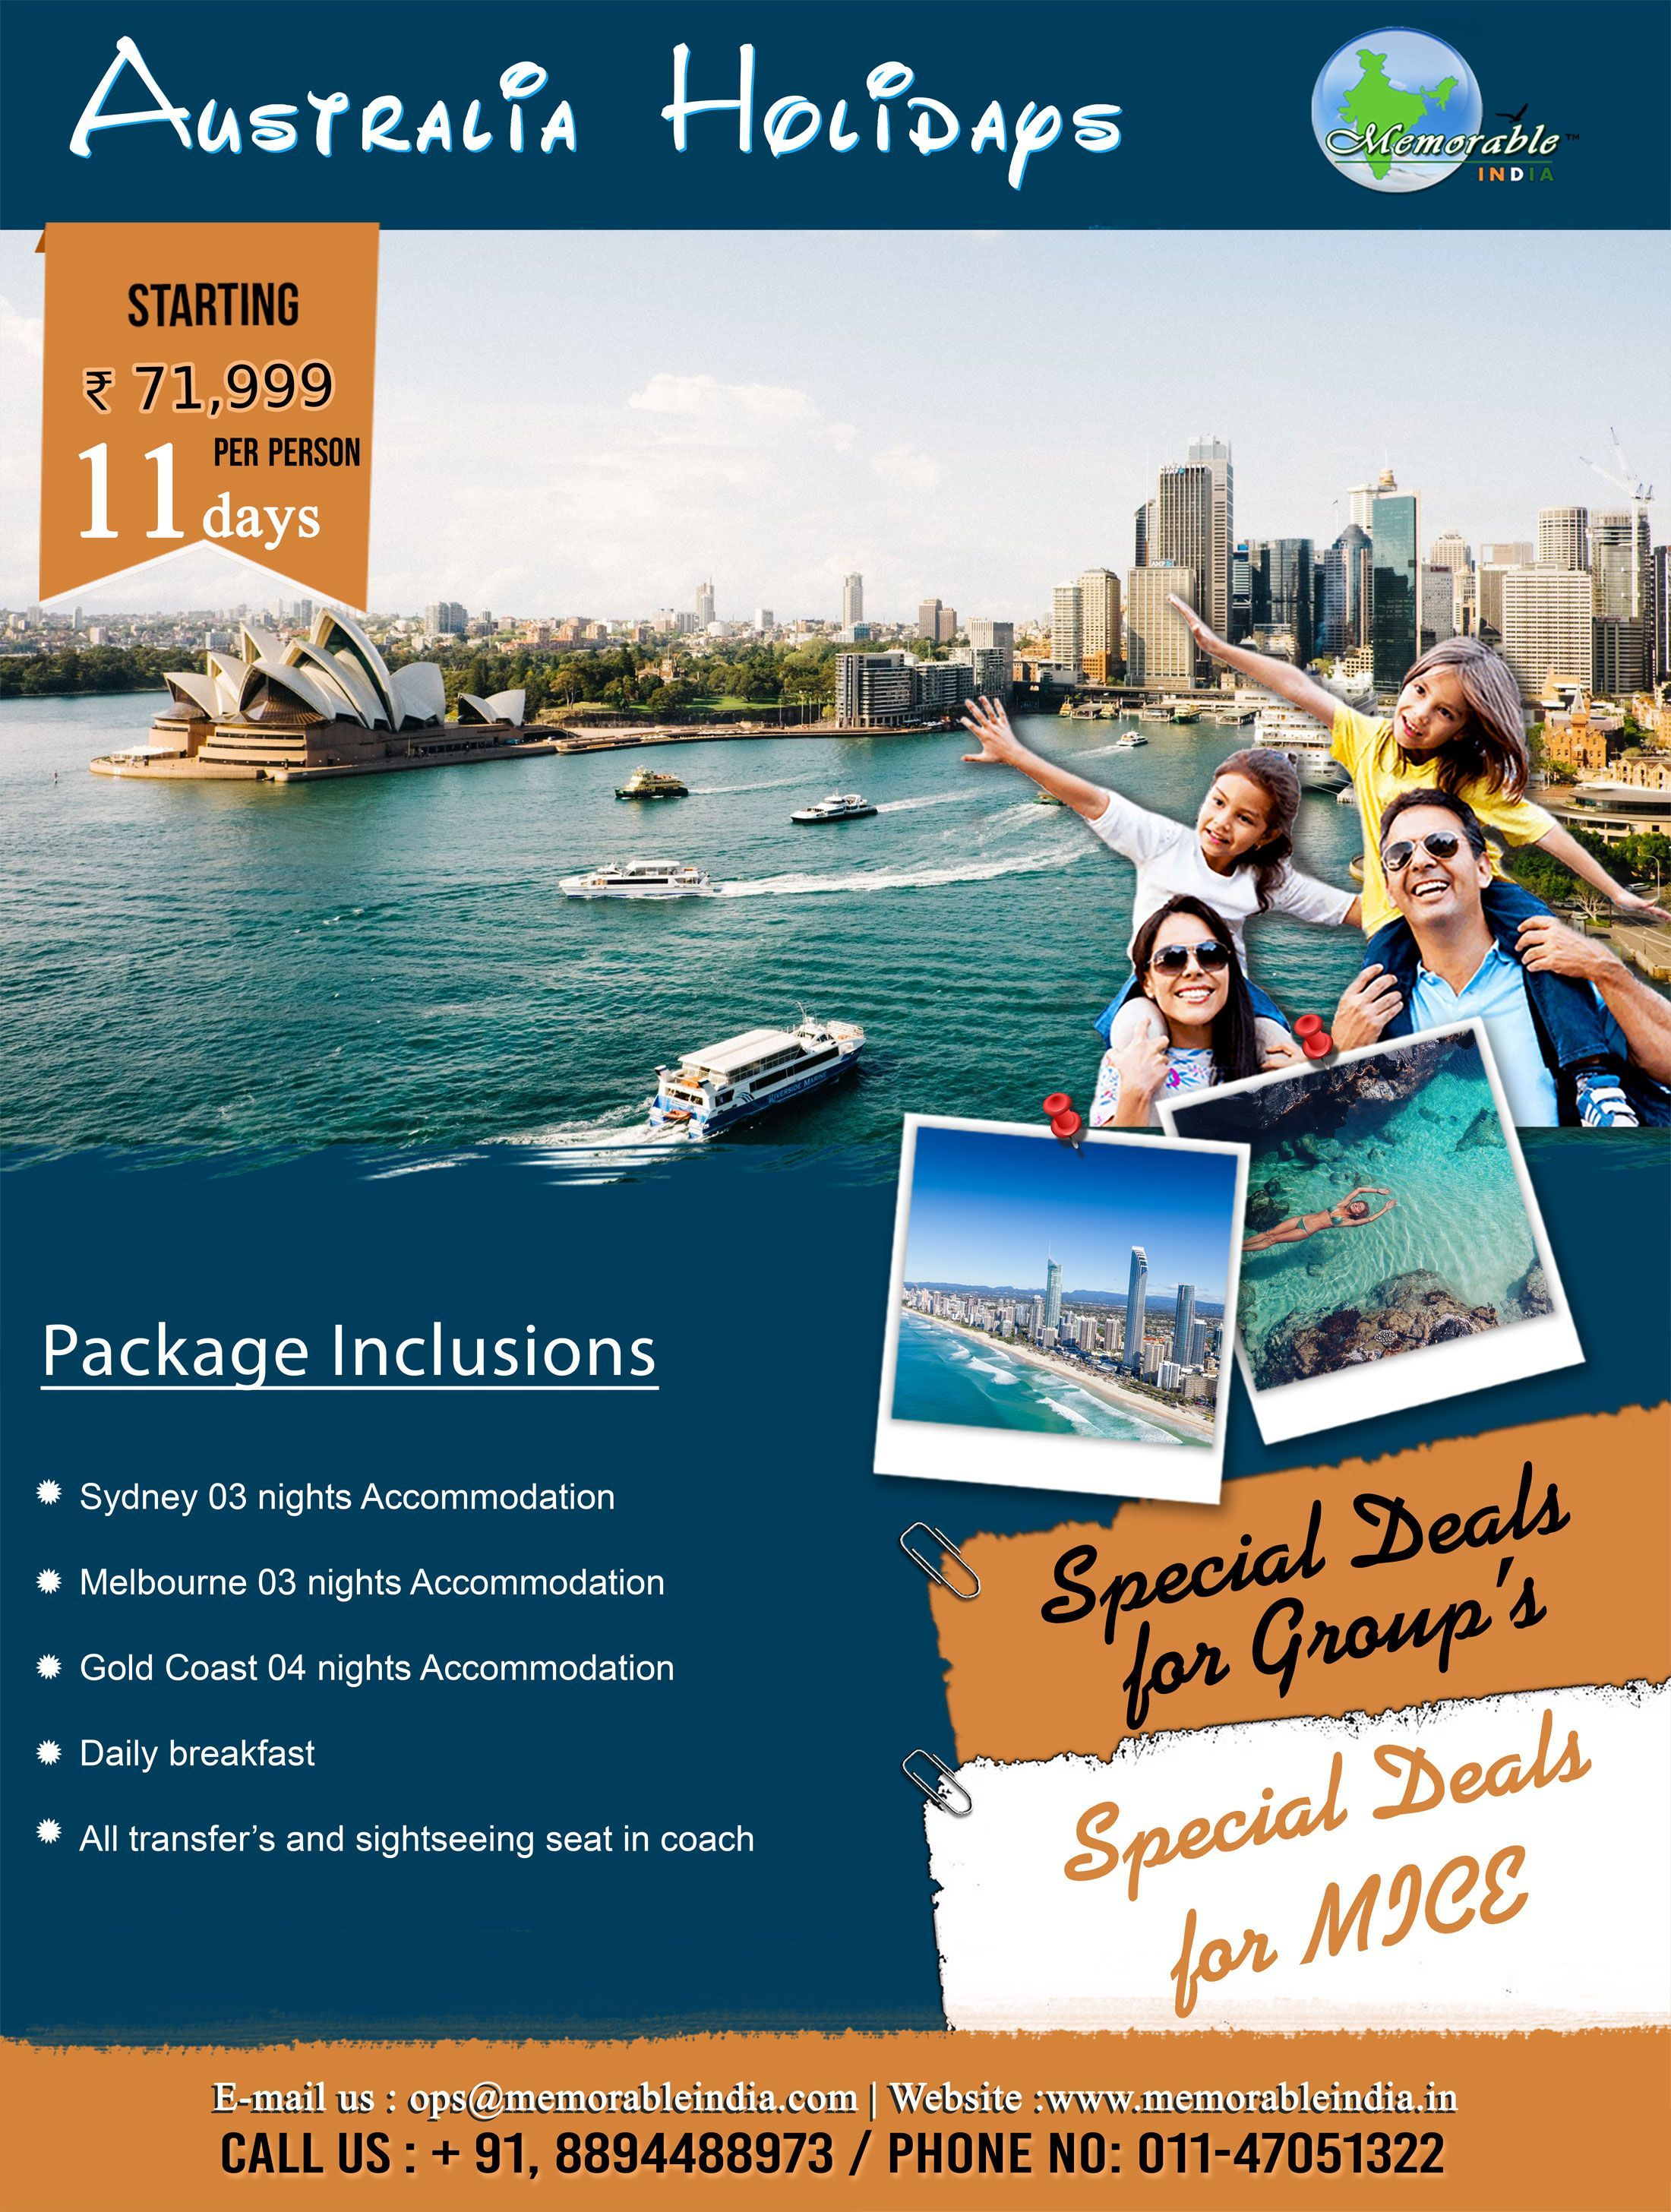 Pin by Memorable India on Offers  Deals  Australia